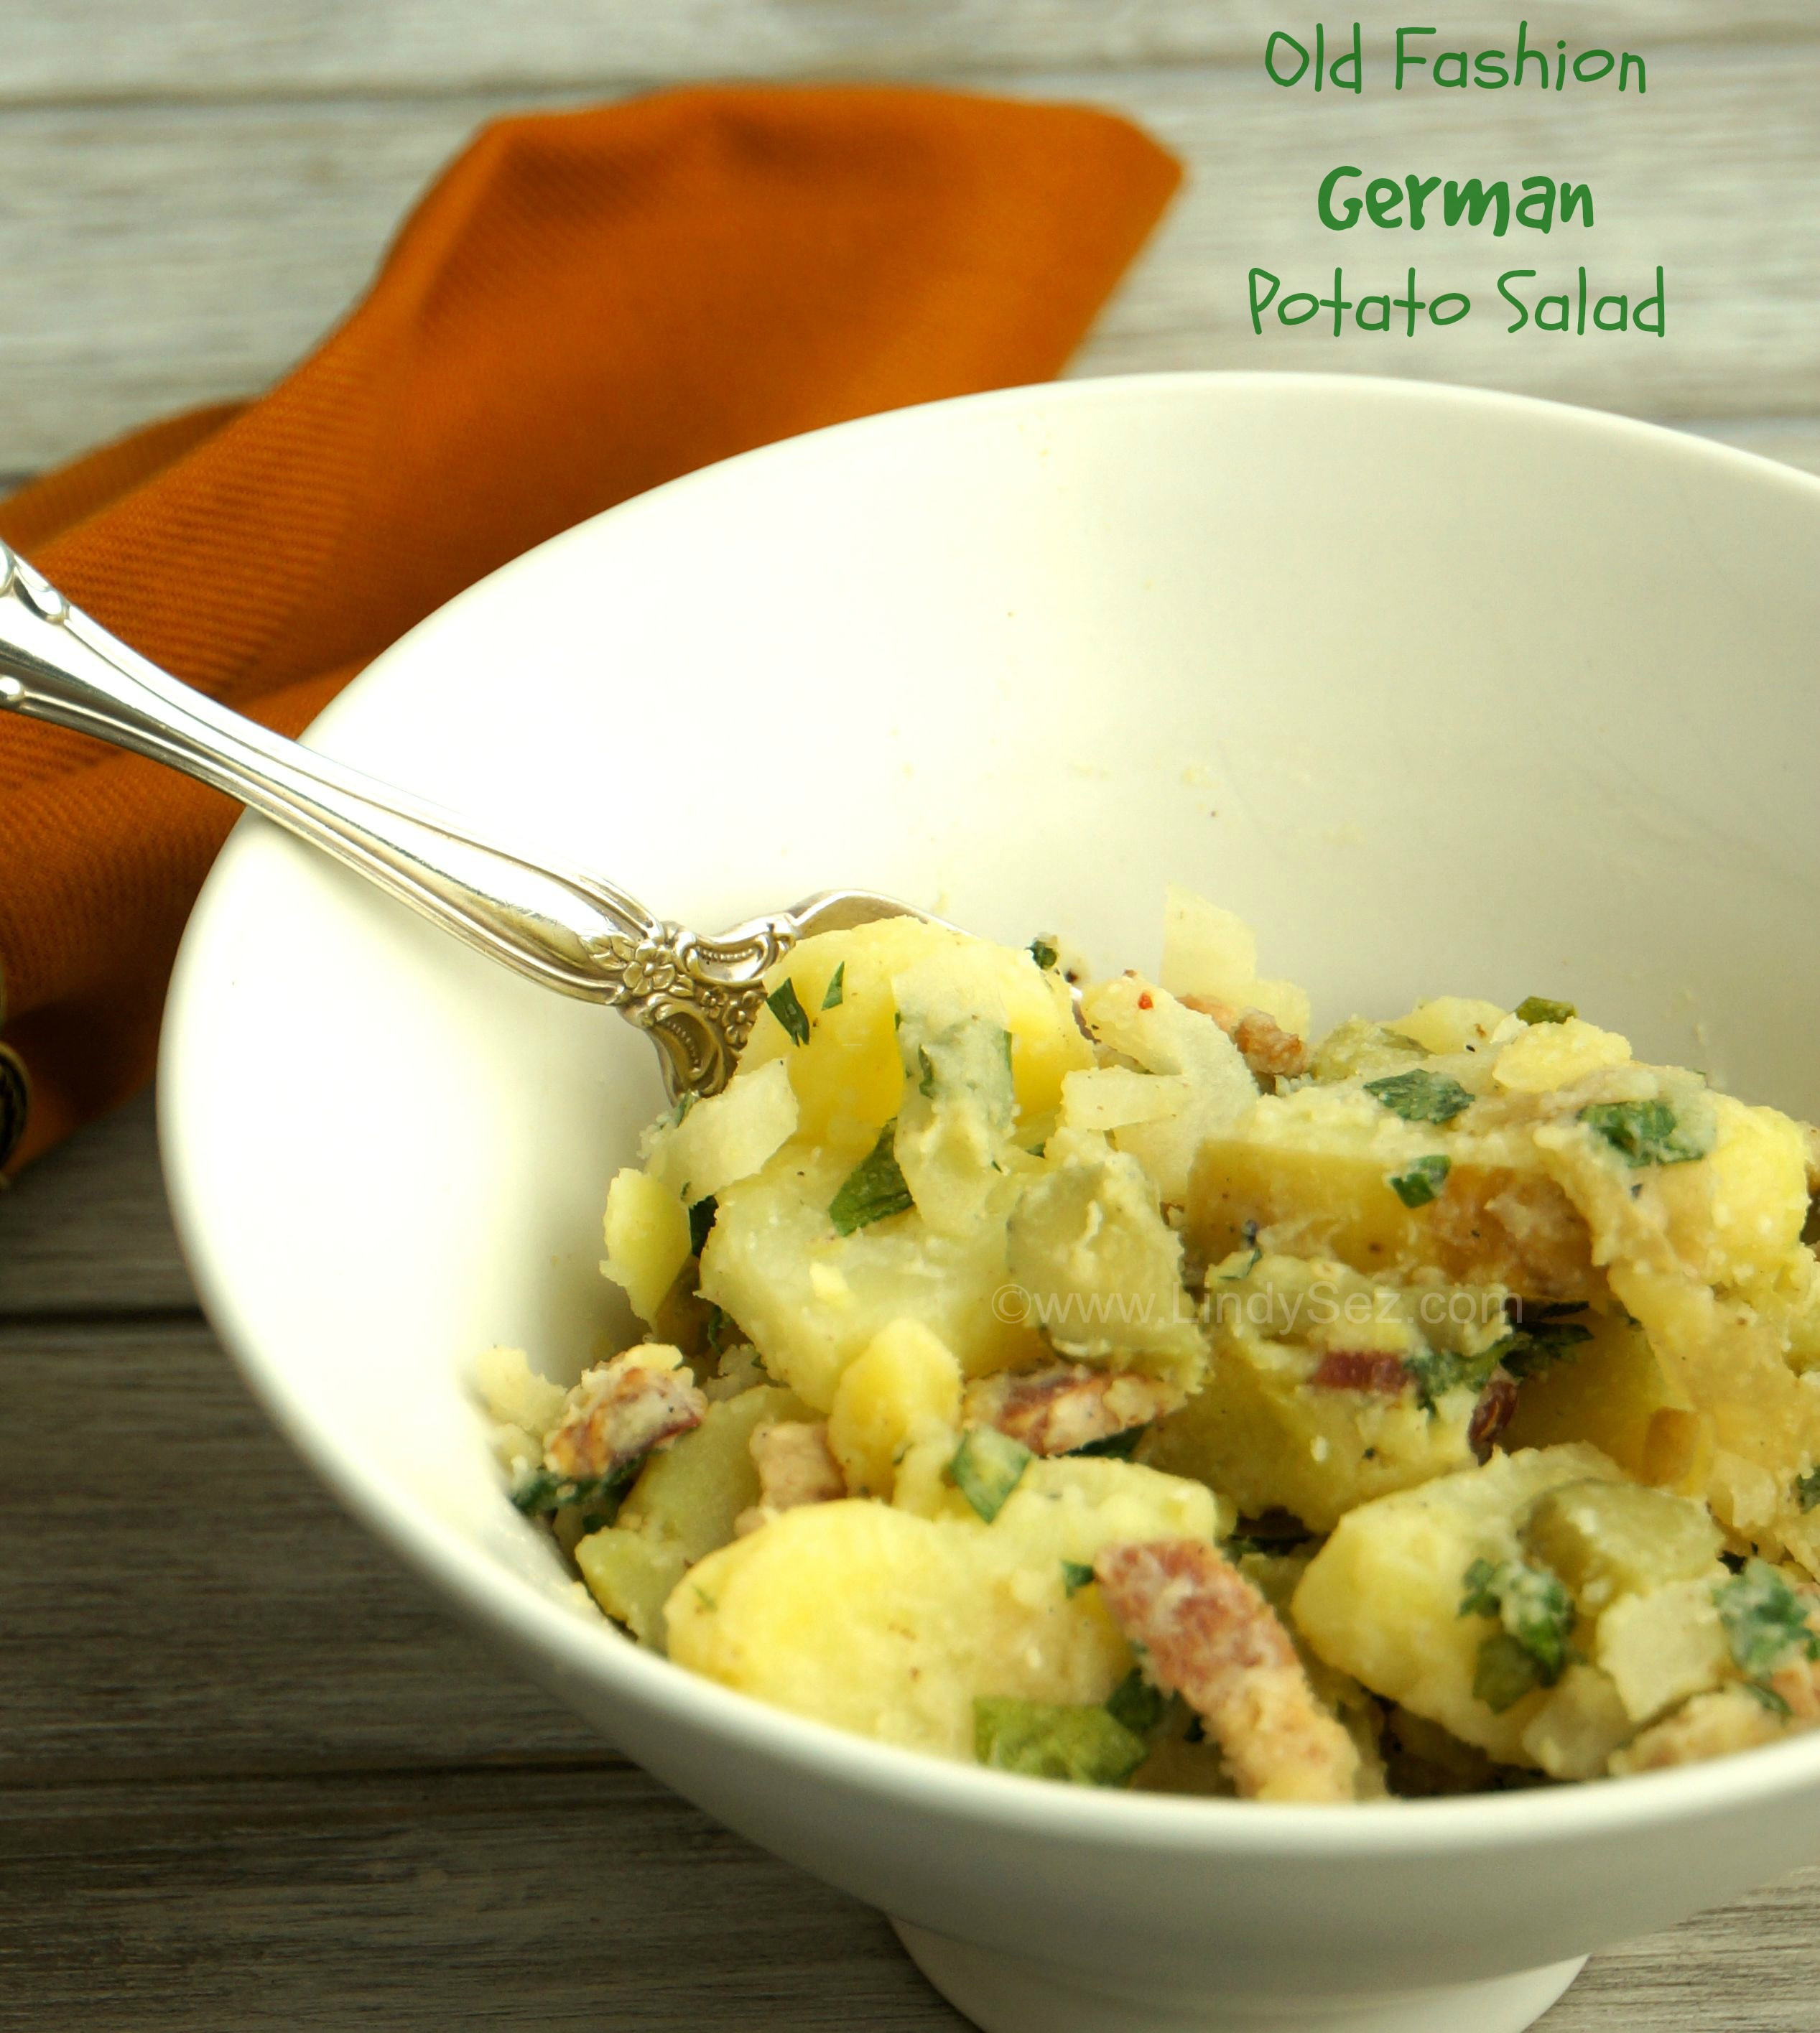 Old Fashioned German Potato Salad  Old Fashion German Potato Salad